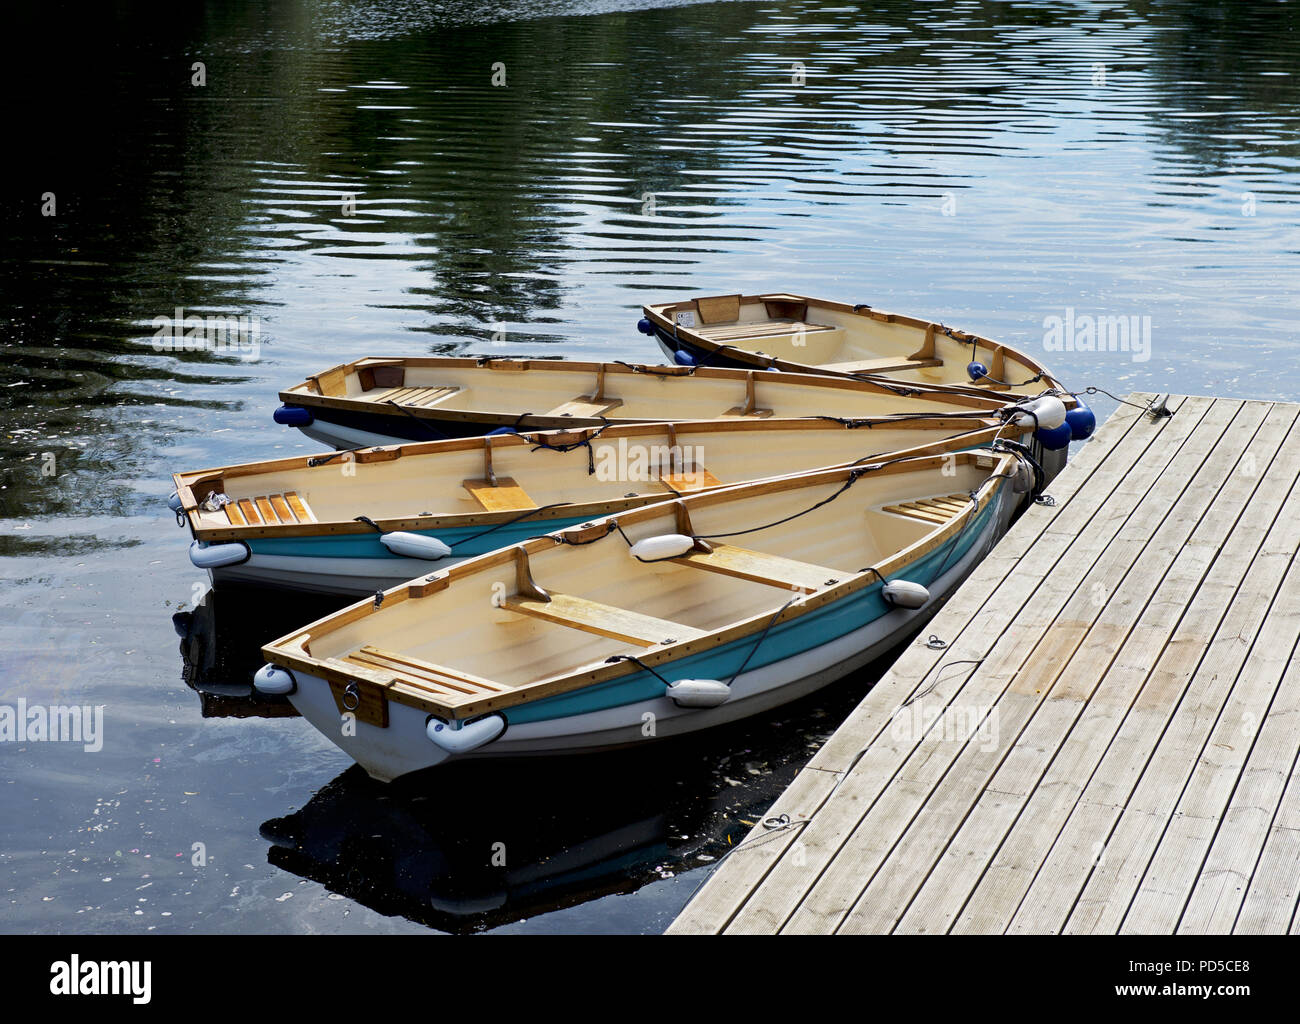 Dinghies for hire, River Tees, Yarm, North Yorkshire, England UK - Stock Image